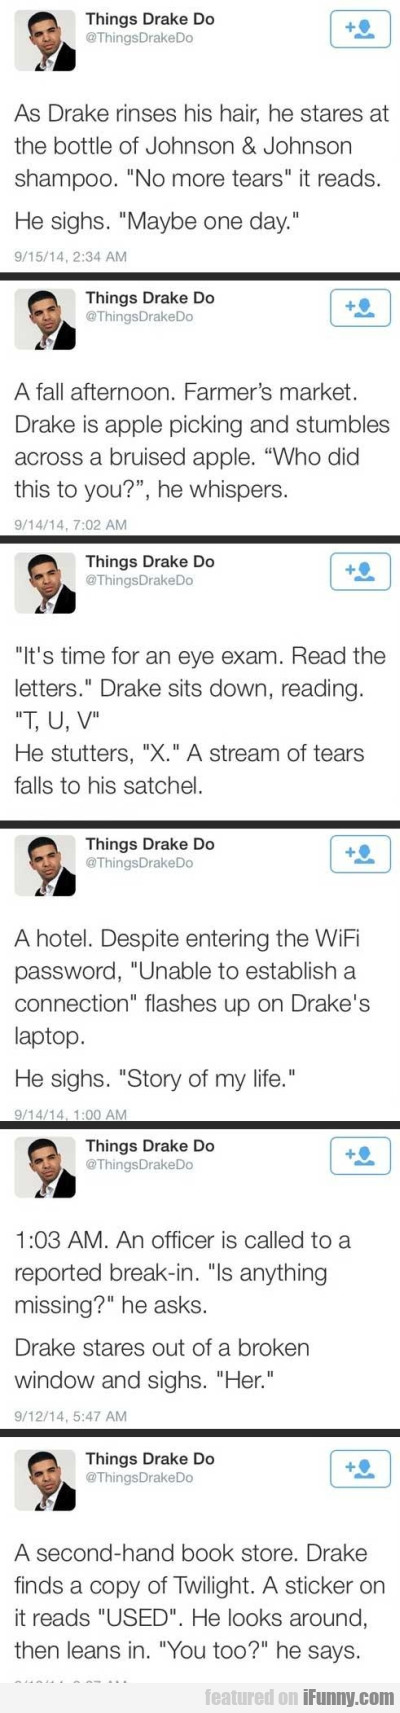 As Drake Rinses His Hair